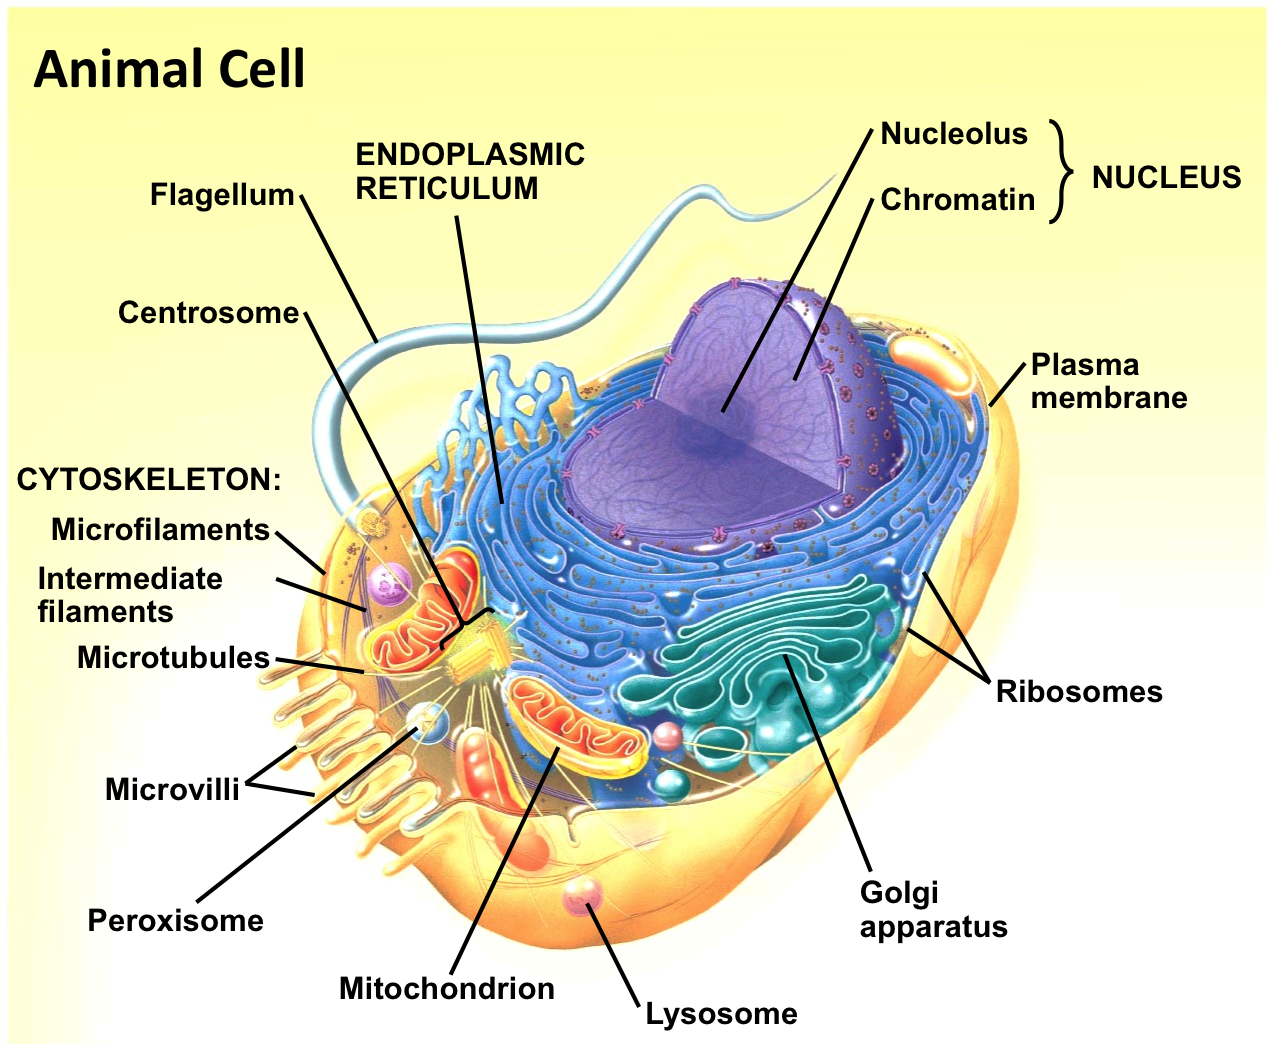 plant cell wallpaper blow up a balloon campbell biology the animal cell diagram campbell [ 1272 x 1044 Pixel ]